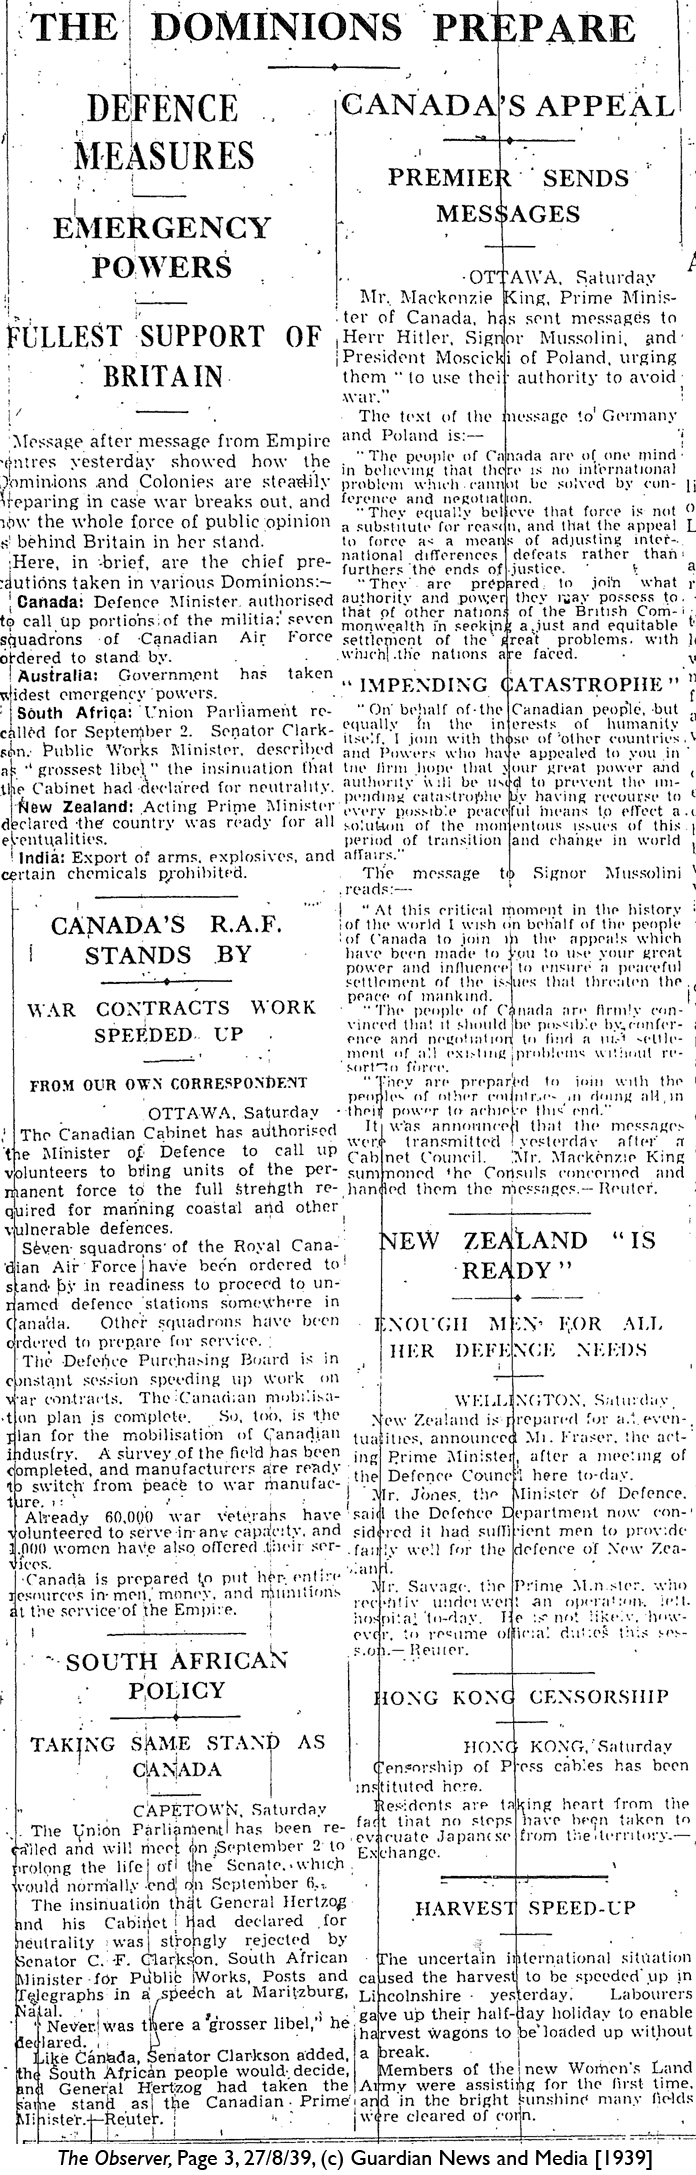 The Observer 27-8-39 Page 3